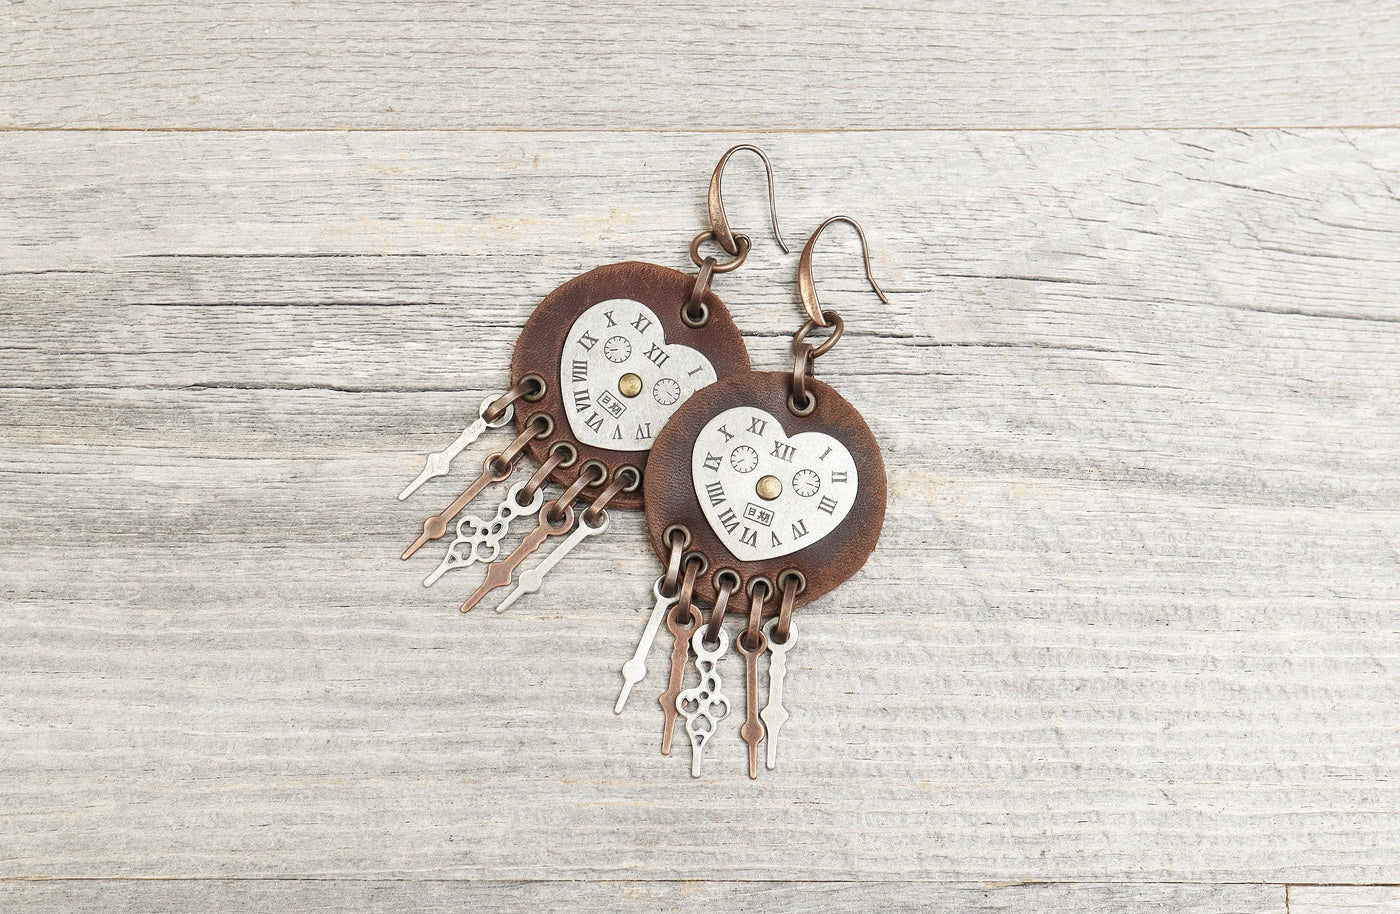 Steampunk Clock Leather Earrings -  Boho Gypsy Earthy Hippie Unique Round Big Disk Circle Watch Statement Bohemian Rustic Handmade Jewelry